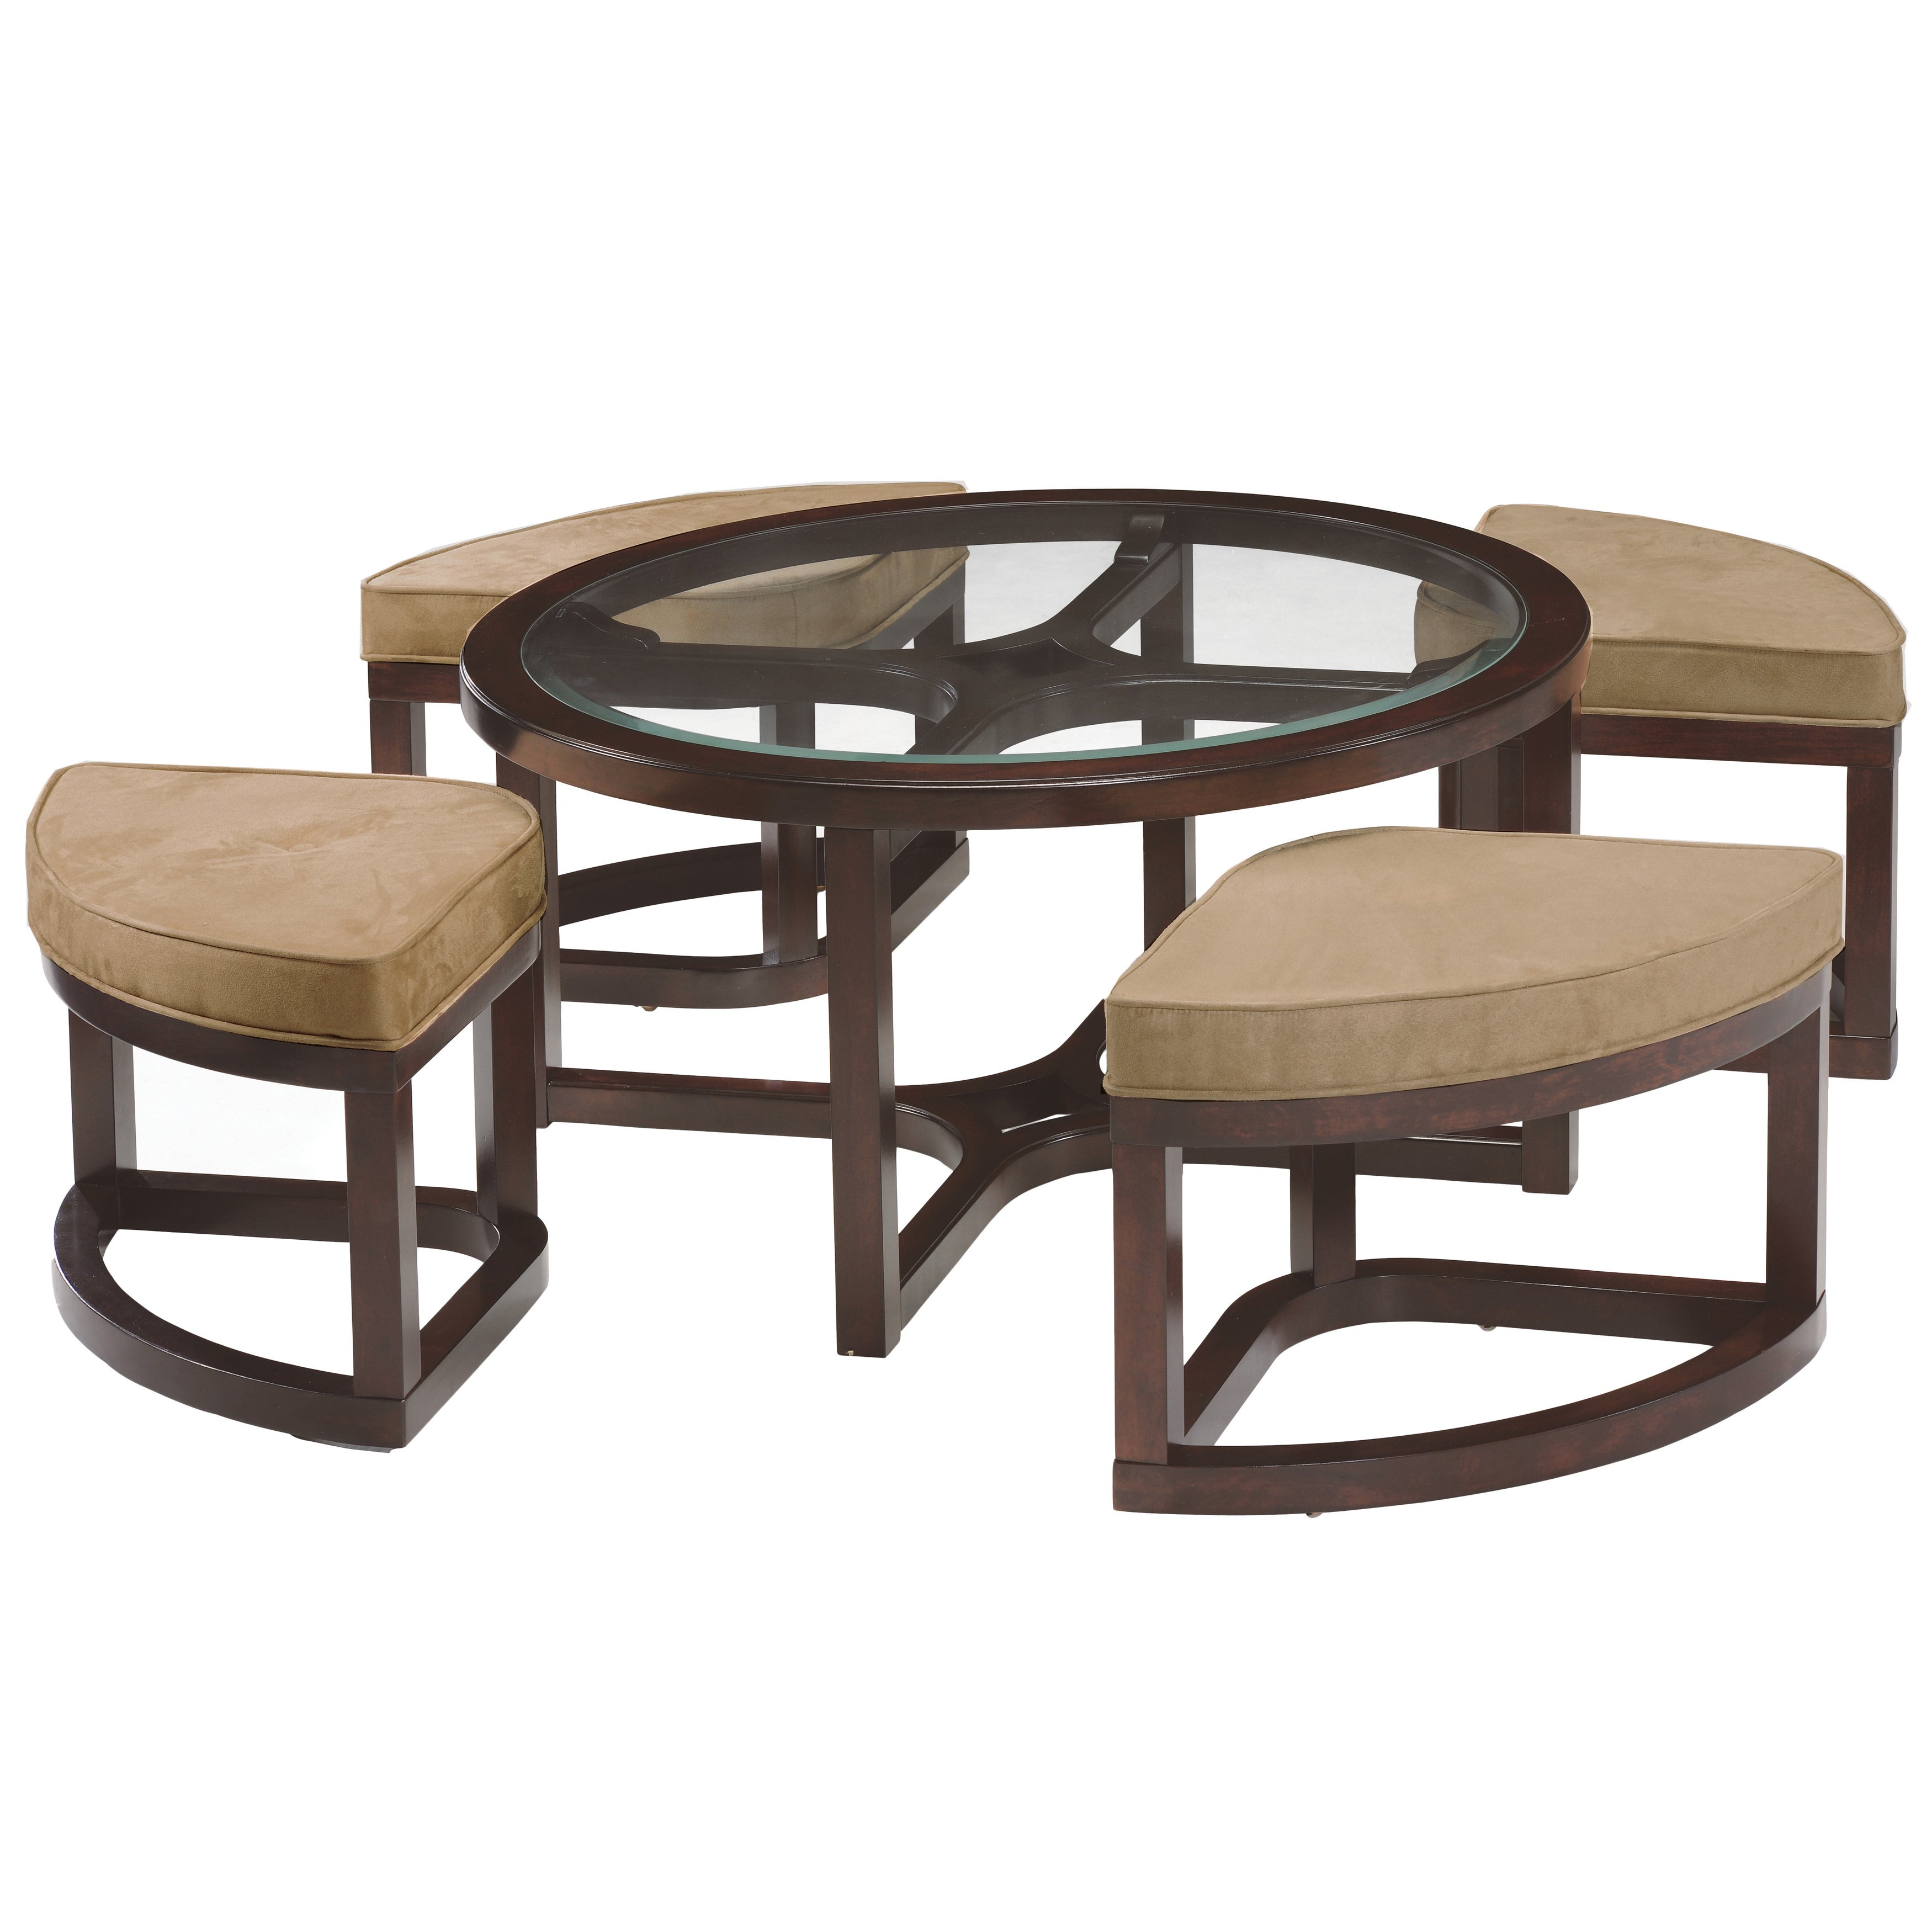 Attrayant Shop Juniper Mink Brown Wood Round Cocktail Table And 4 Piece Stools Set    Free Shipping Today   Overstock.com   8025157